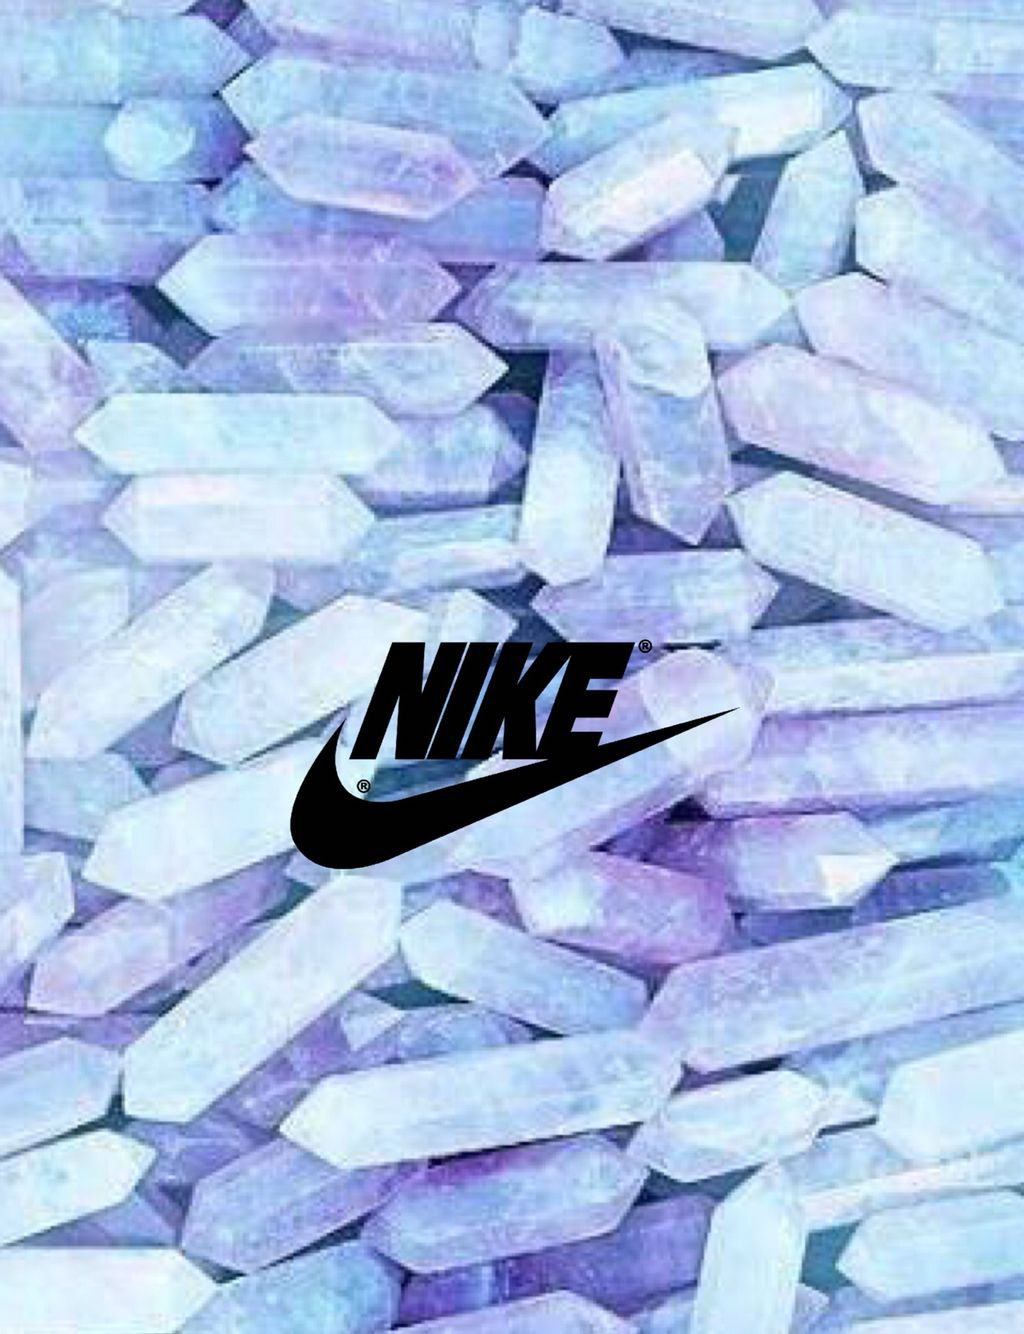 Popular Wallpaper Nike Aesthetic - c16402efa3c9e64759ae40085b8c917f  Pictures_12489.jpg